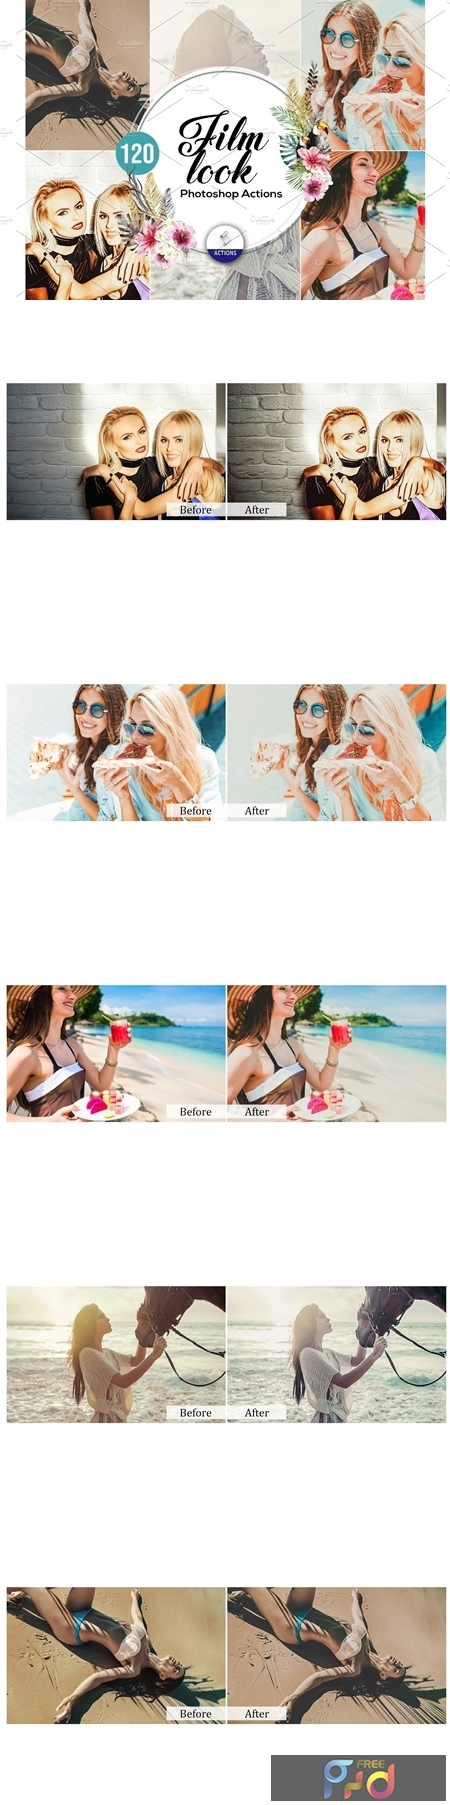 120 Film Look Photoshop Actions 3937459 1